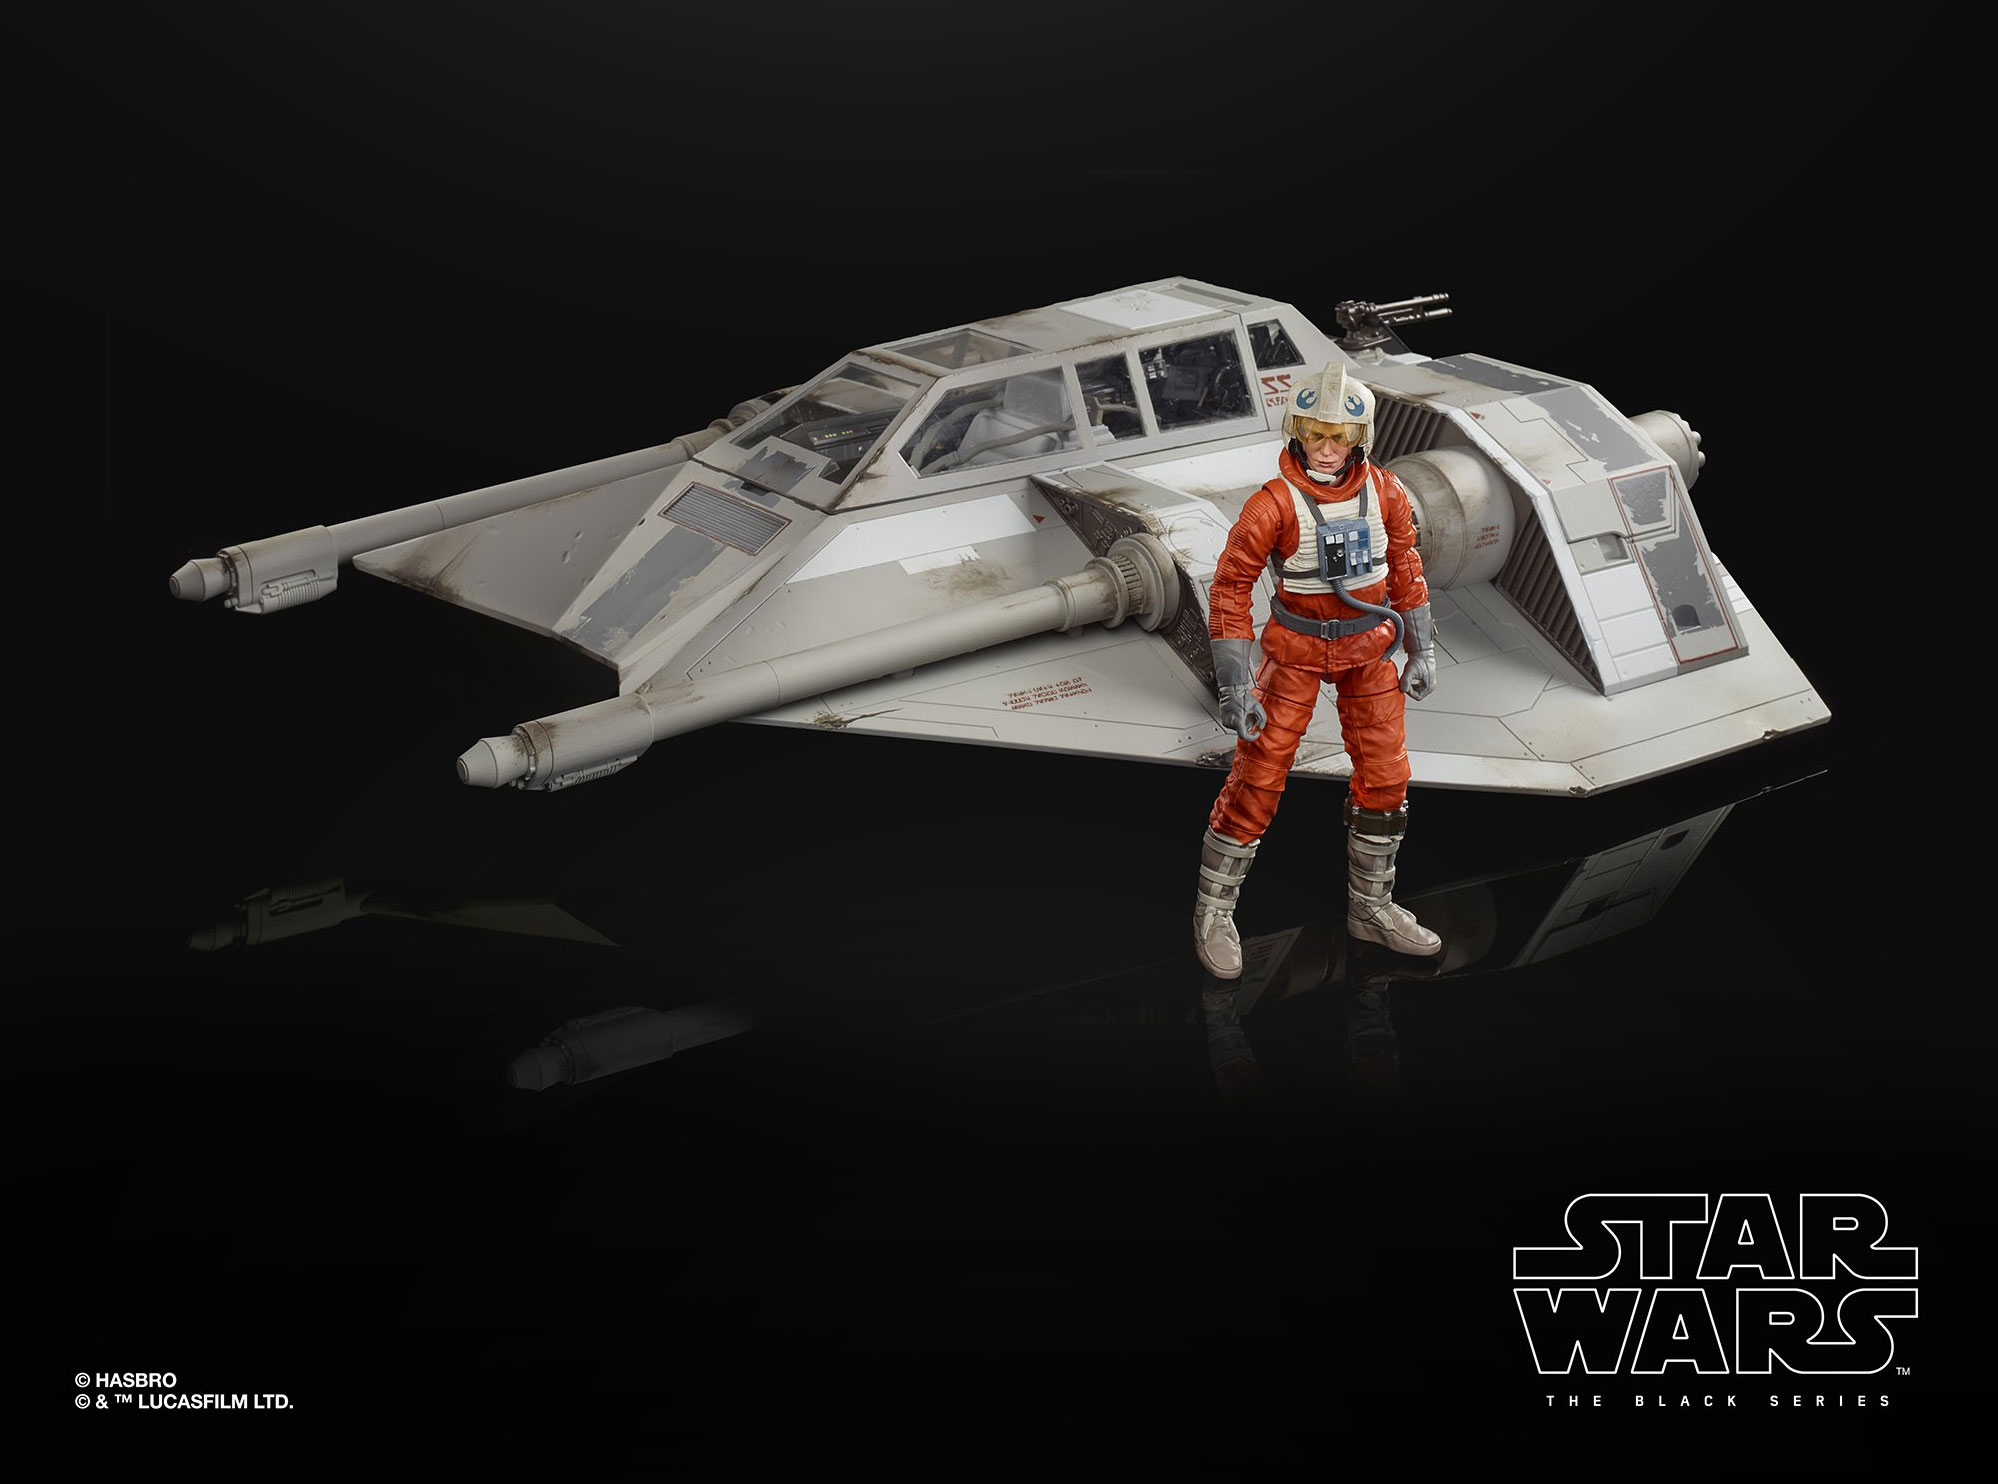 star-wars-black-series-snowspeeder-and-dak-ralter-figure-pre-order